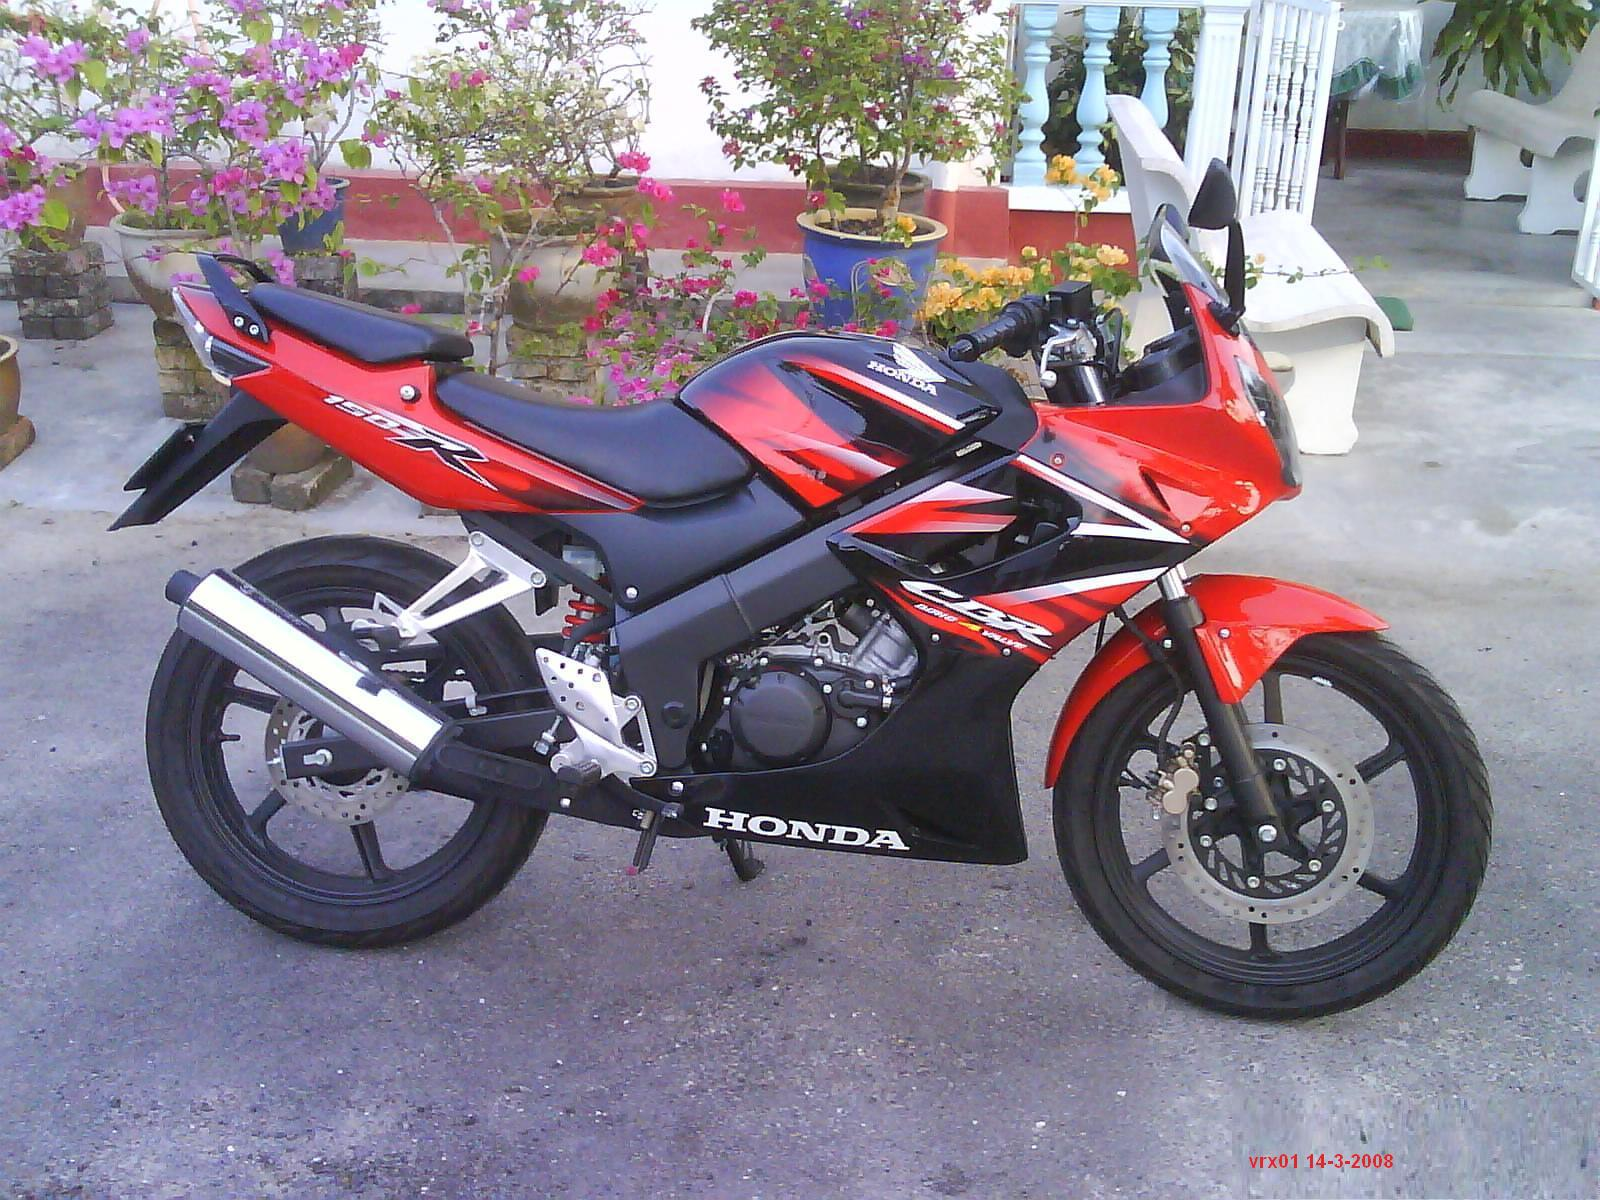 Cbr 150 R Old 620728 Hd Wallpaper Backgrounds Download